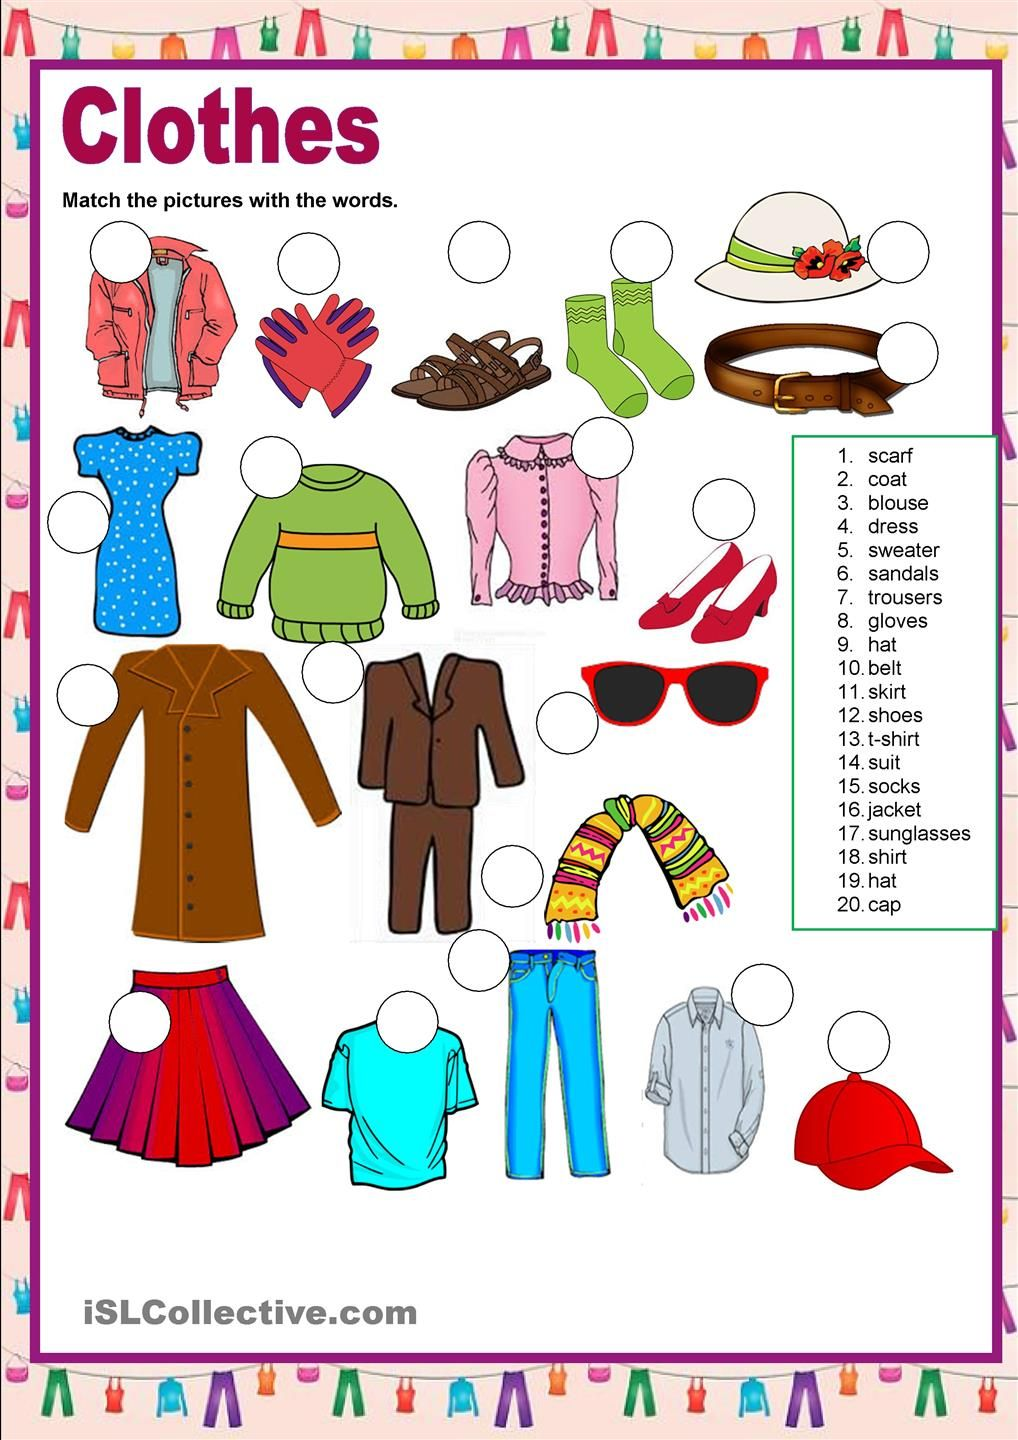 Fashion Clothes Teach english to kids, Learning